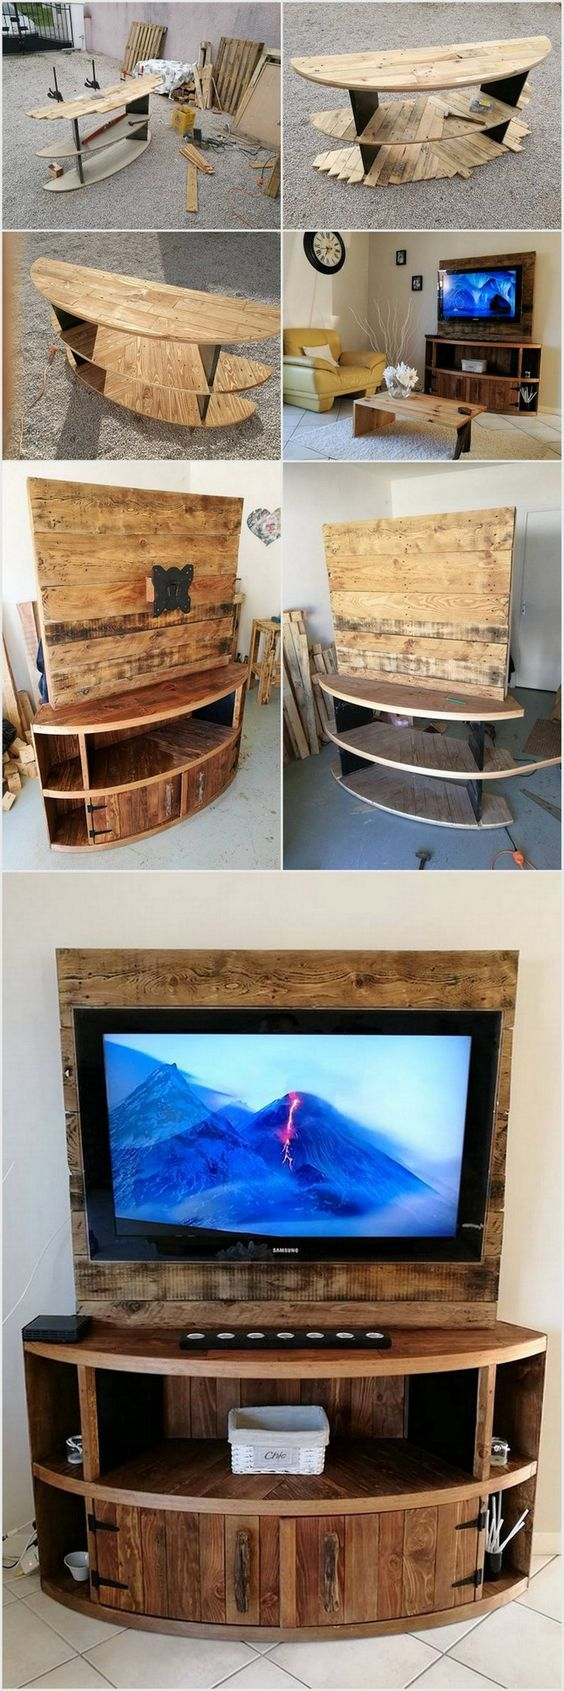 Diy Tv Stand From Cable Drum